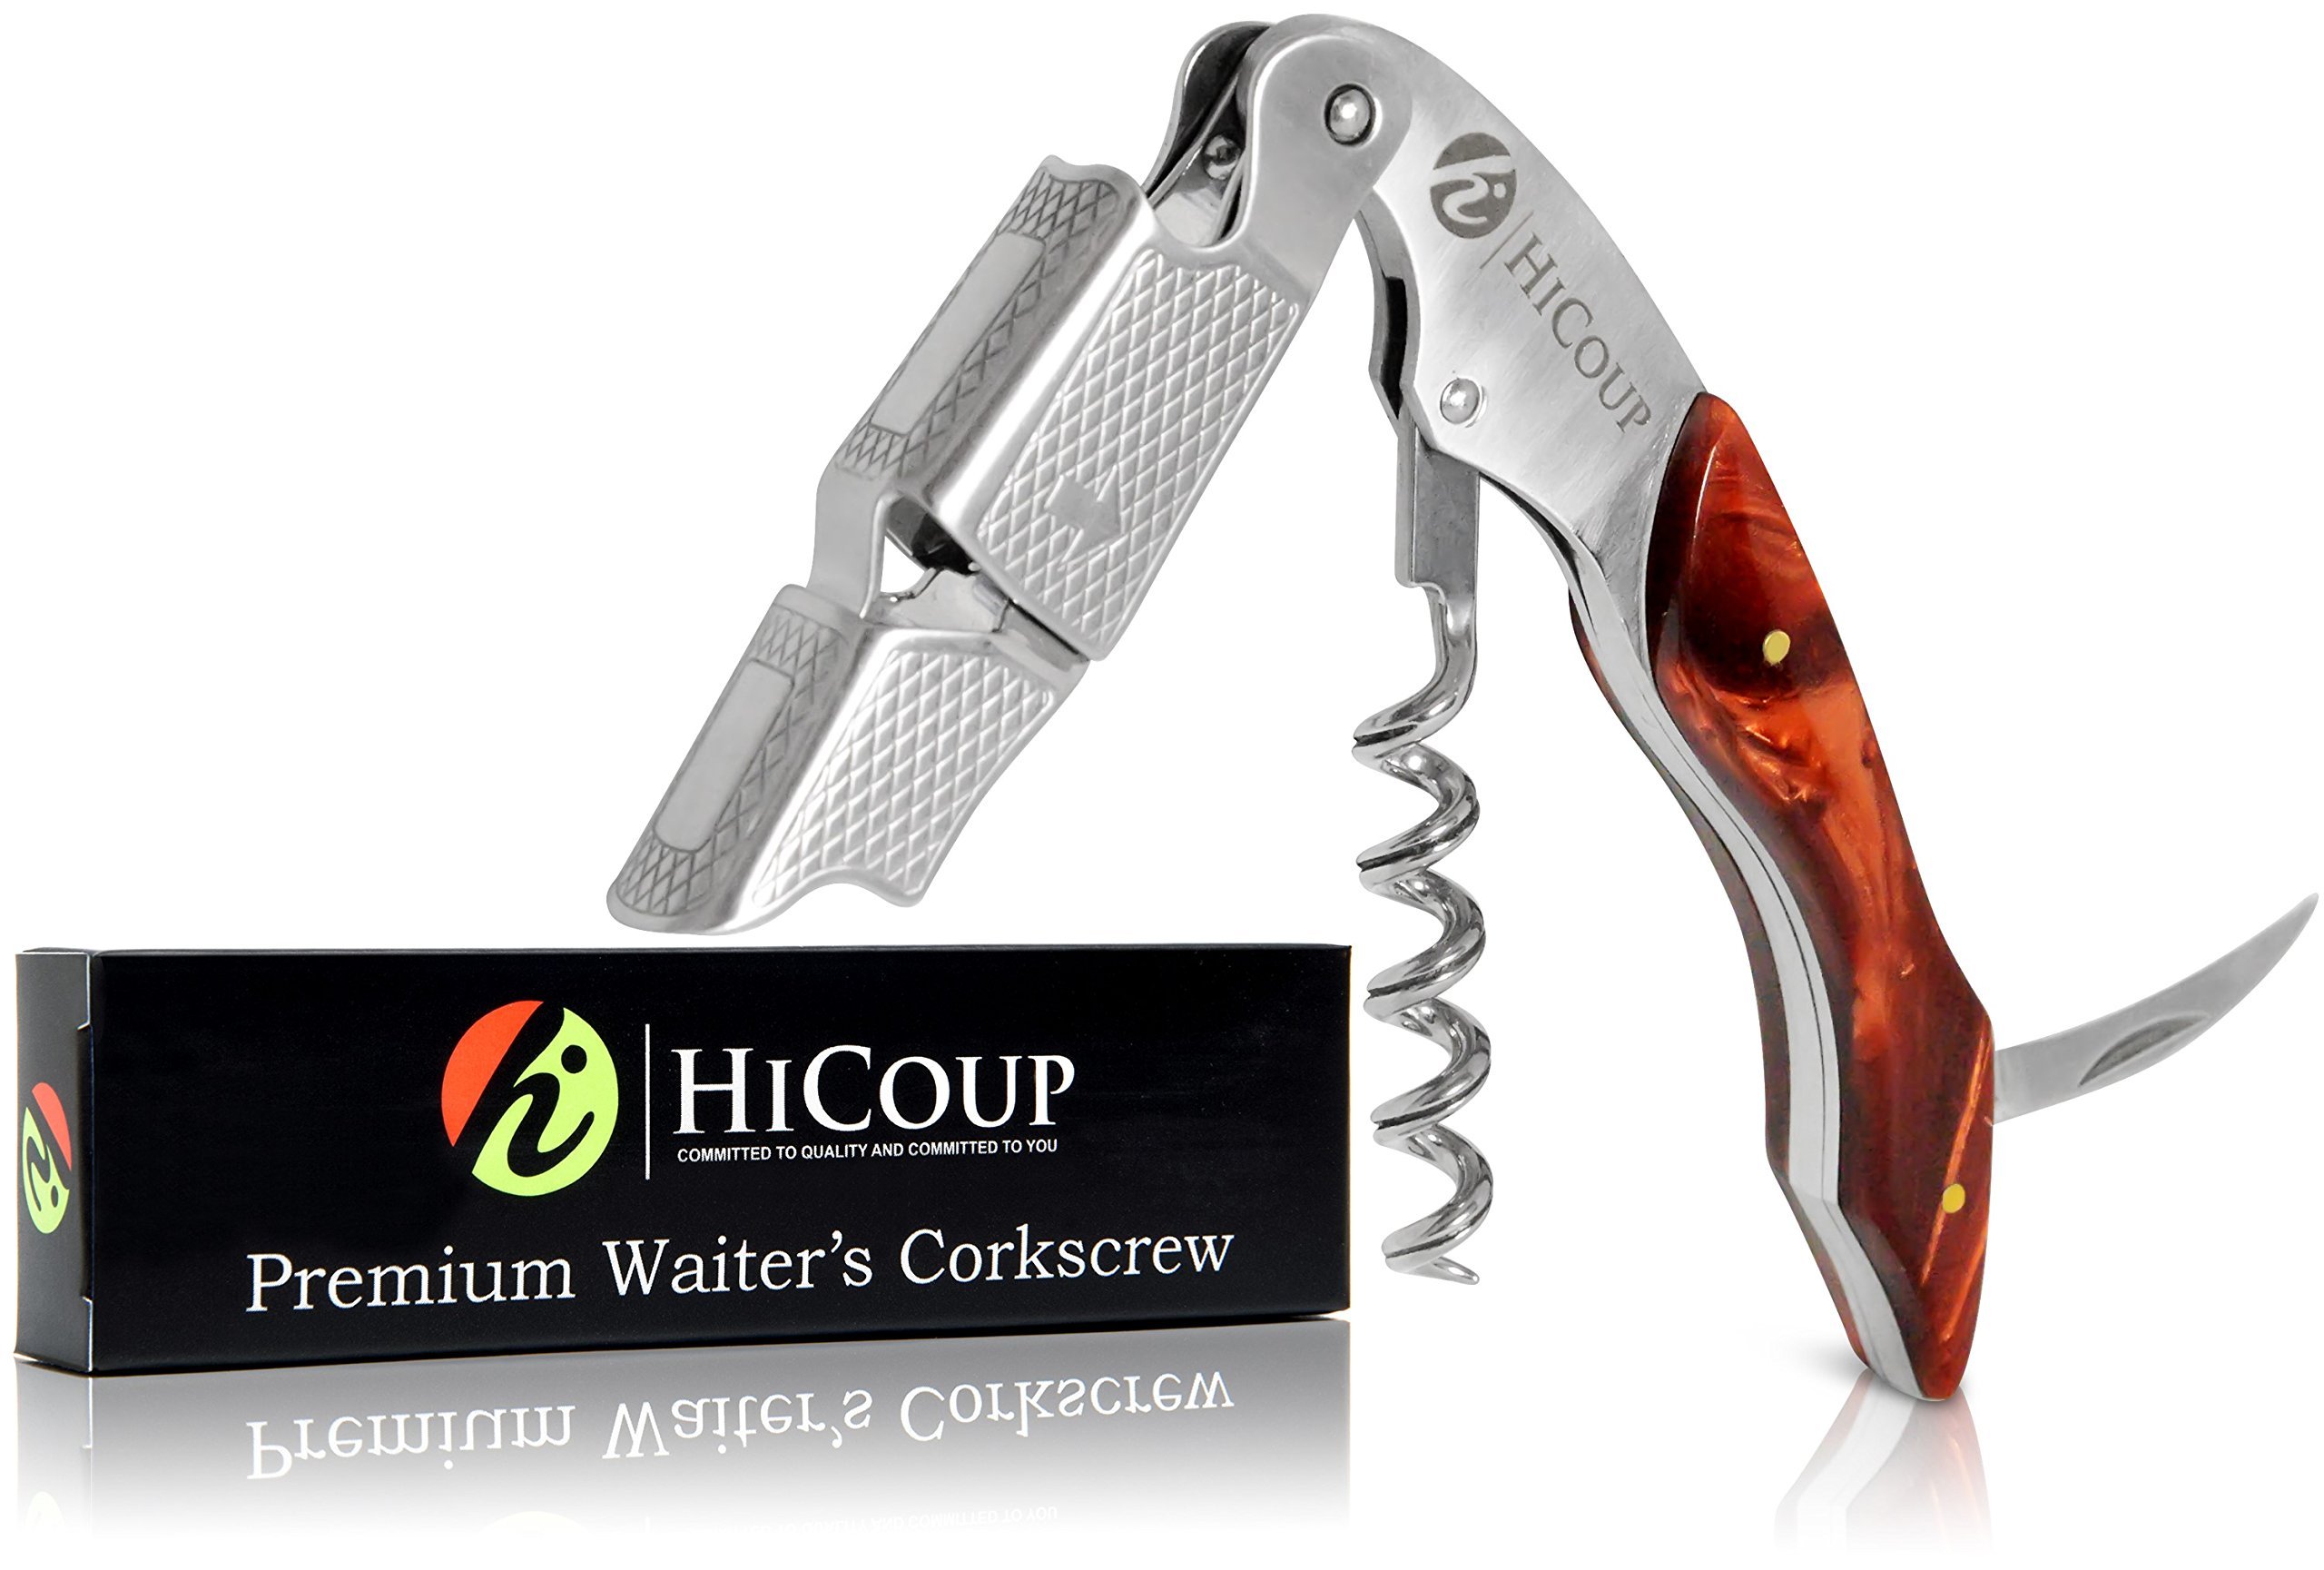 Professional Waiter's Corkscrew by HiCoup - Tiger's Eye Resin Handle All-in-one Corkscrew, Bottle Opener and Foil Cutter, the Favored Choice of Sommeliers, Waiters and Bartenders Around the World